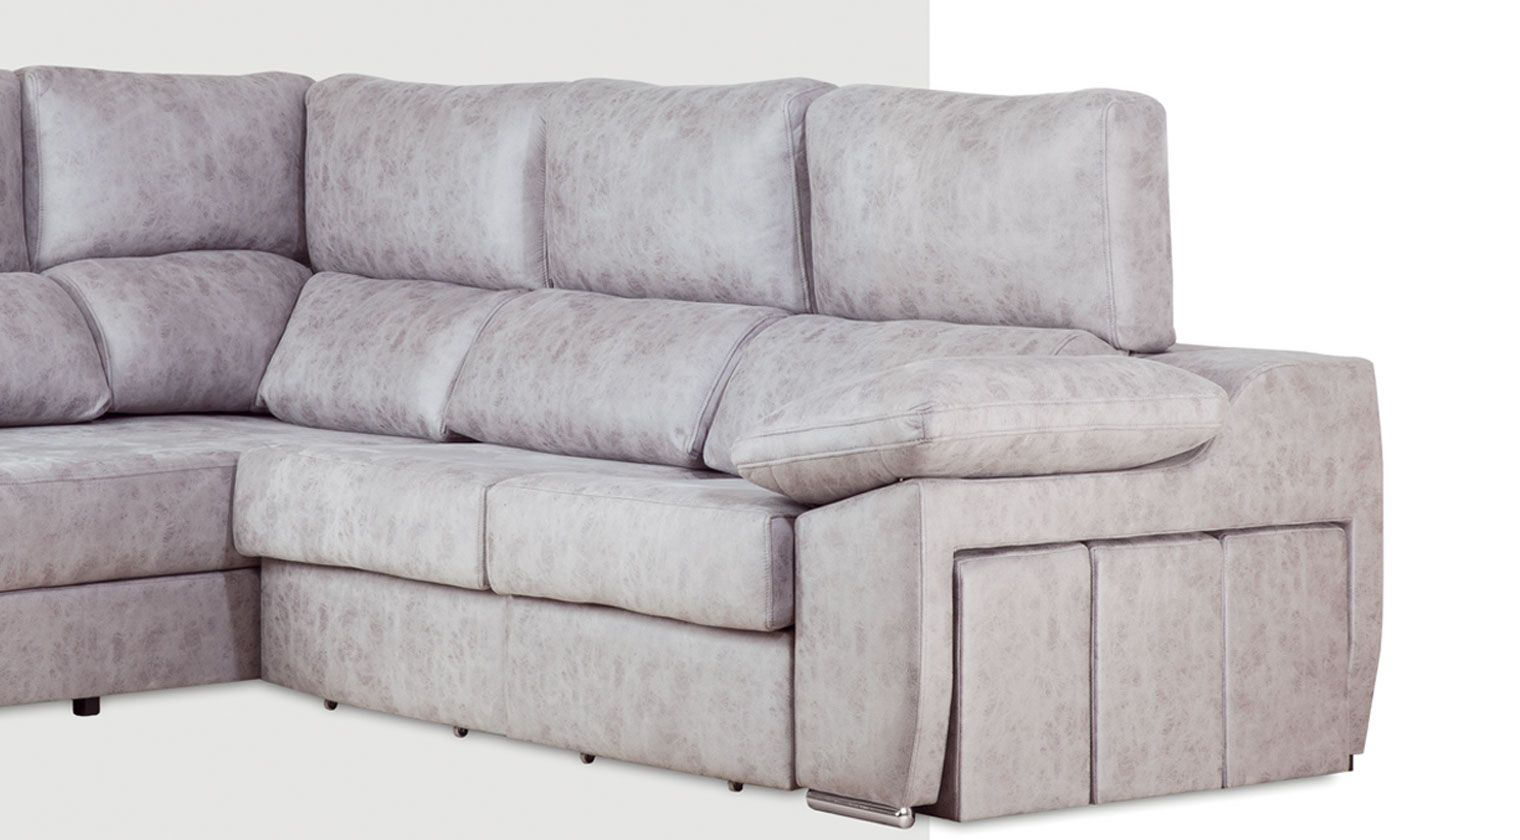 Sofas modernos madrid affordable sof cama with sofas - Venta de sofas en madrid baratos ...